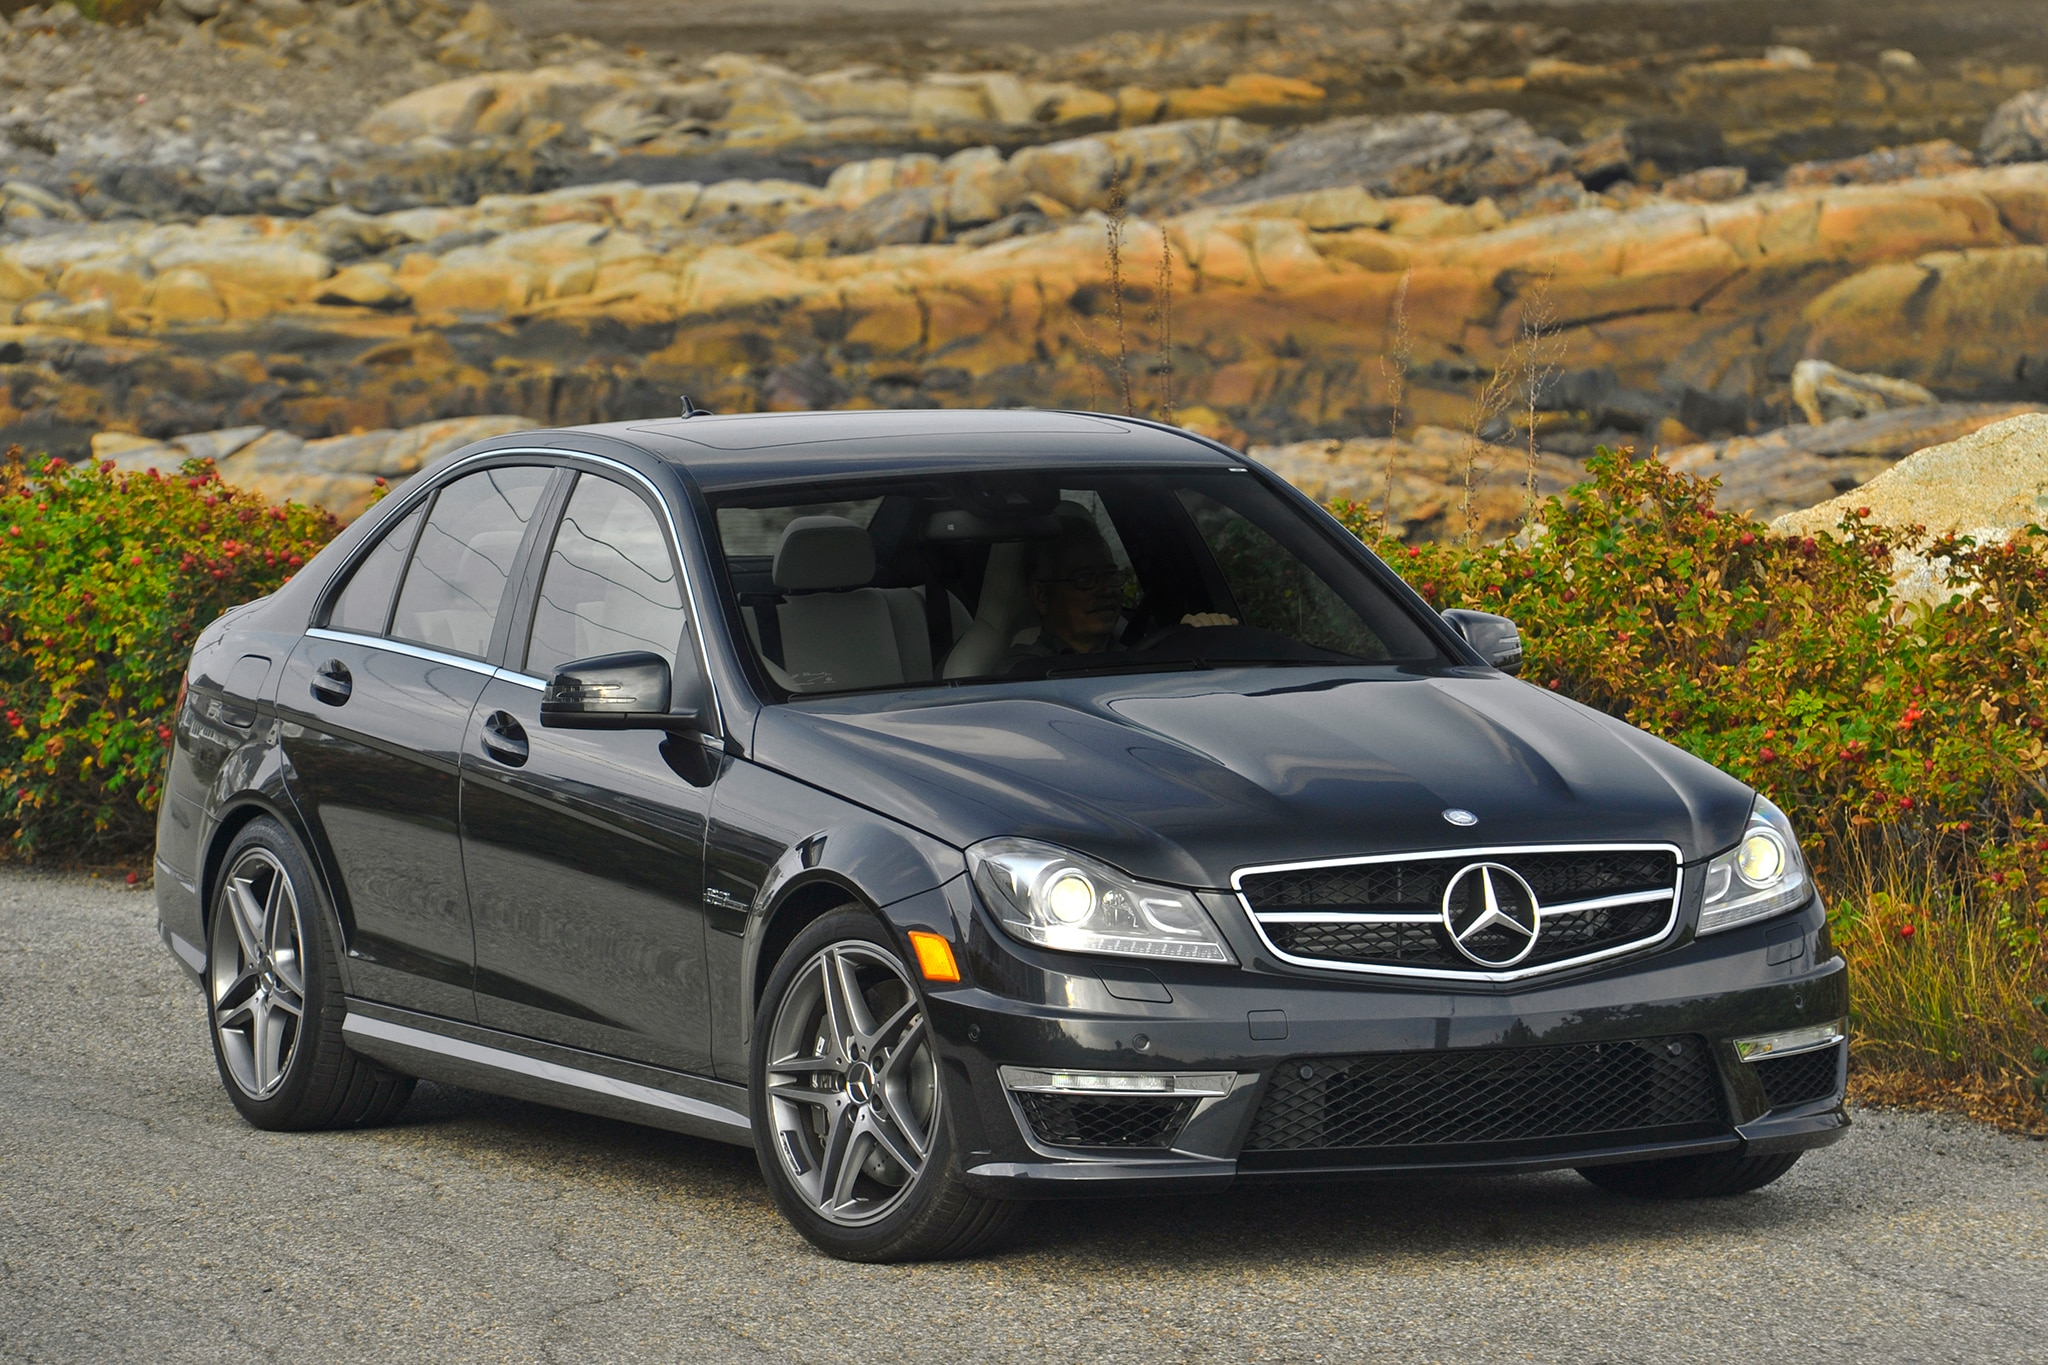 2013 mercedes benz c300 4matic gains power economy m for 2013 mercedes benz c class c 300 4matic